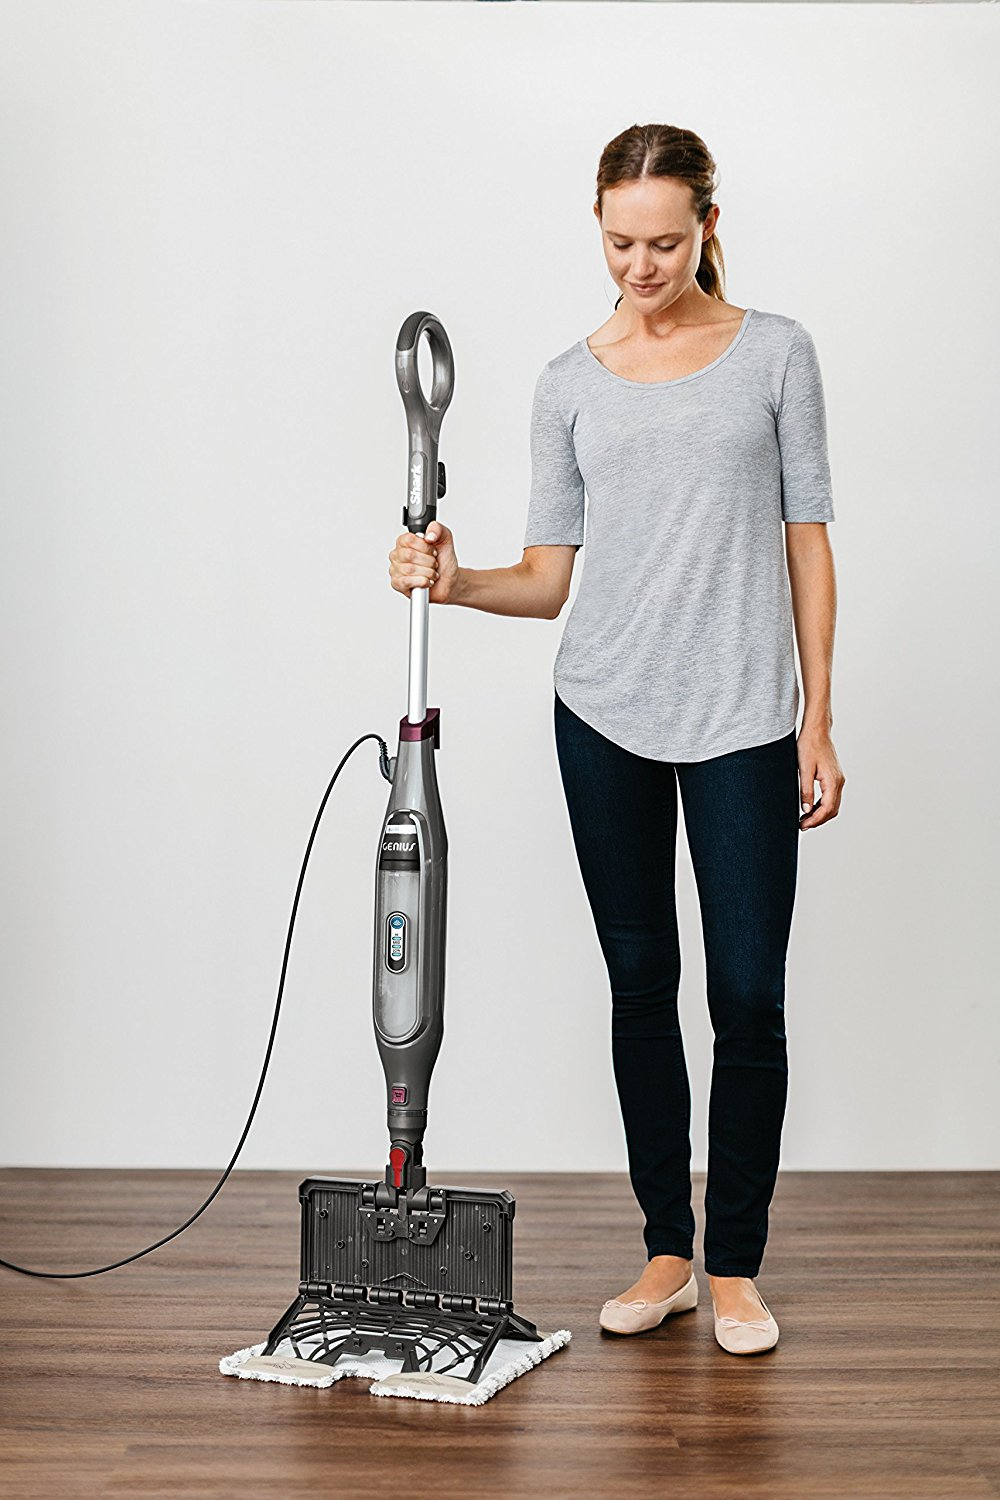 5 Best Steam Mops For Hardwood Floors 2018